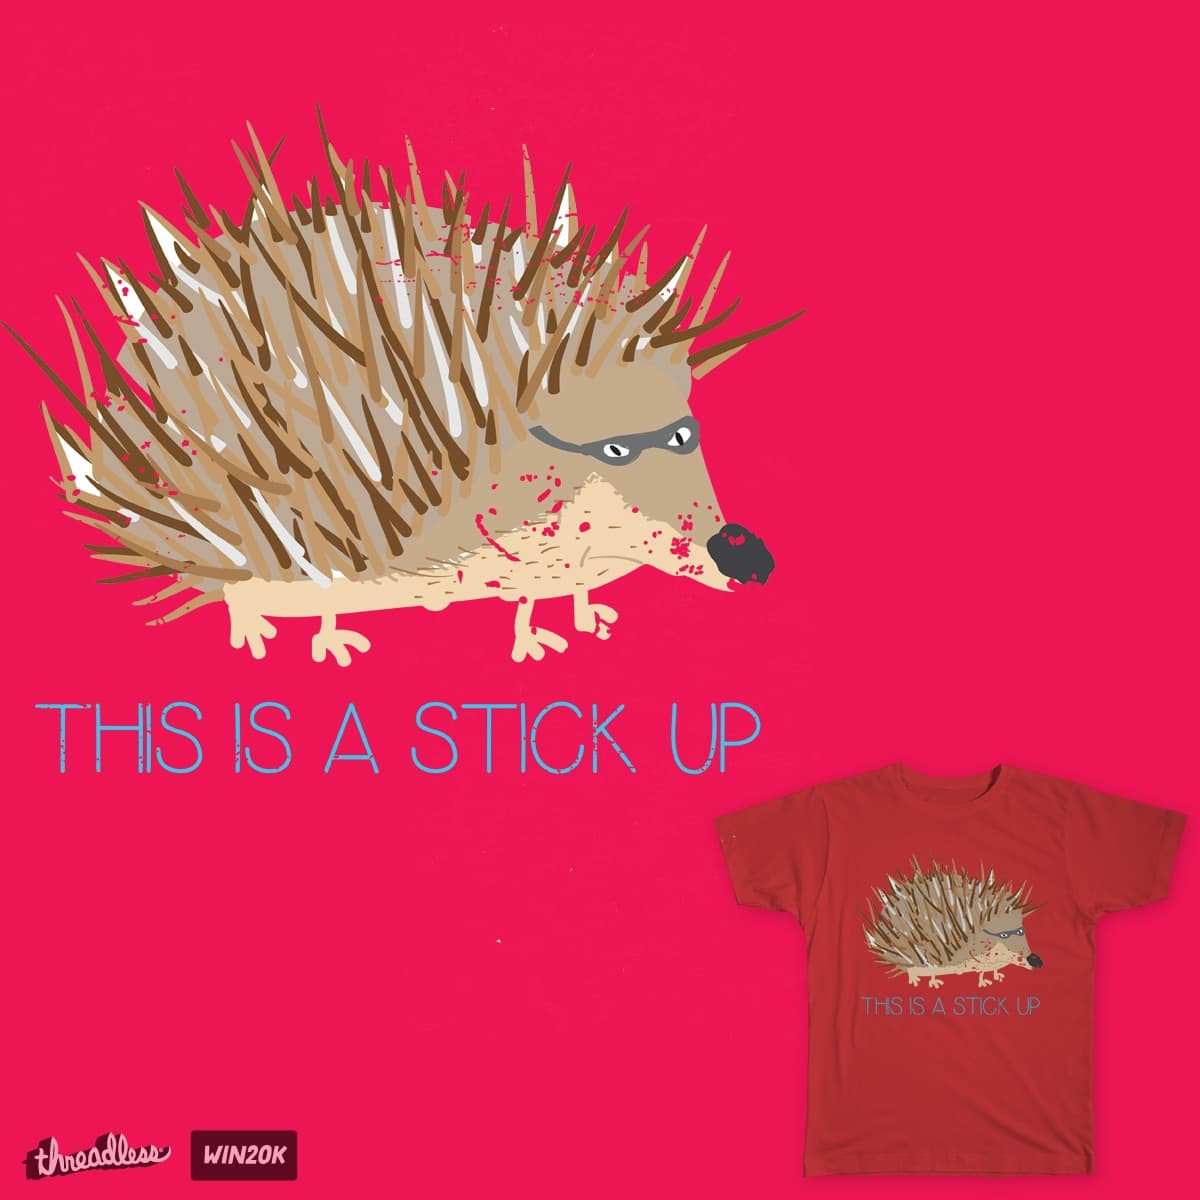 THIS IS A STUCK UP by Jamietaylor1985 on Threadless